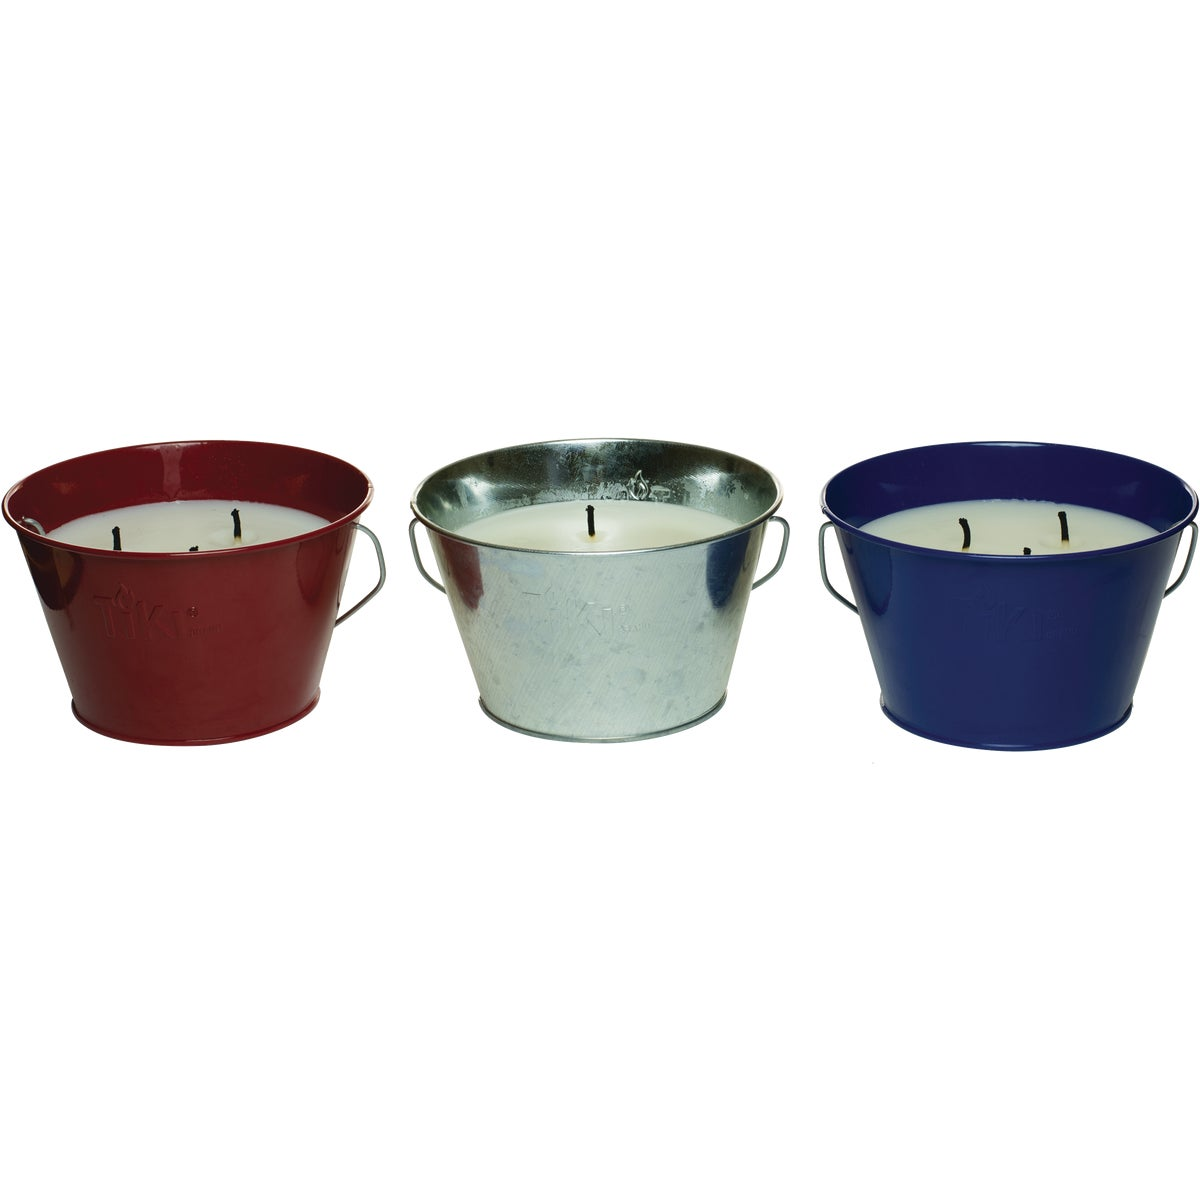 3 WICK CITRONELLA BUCKET - 1412112 by Lamplight Farms